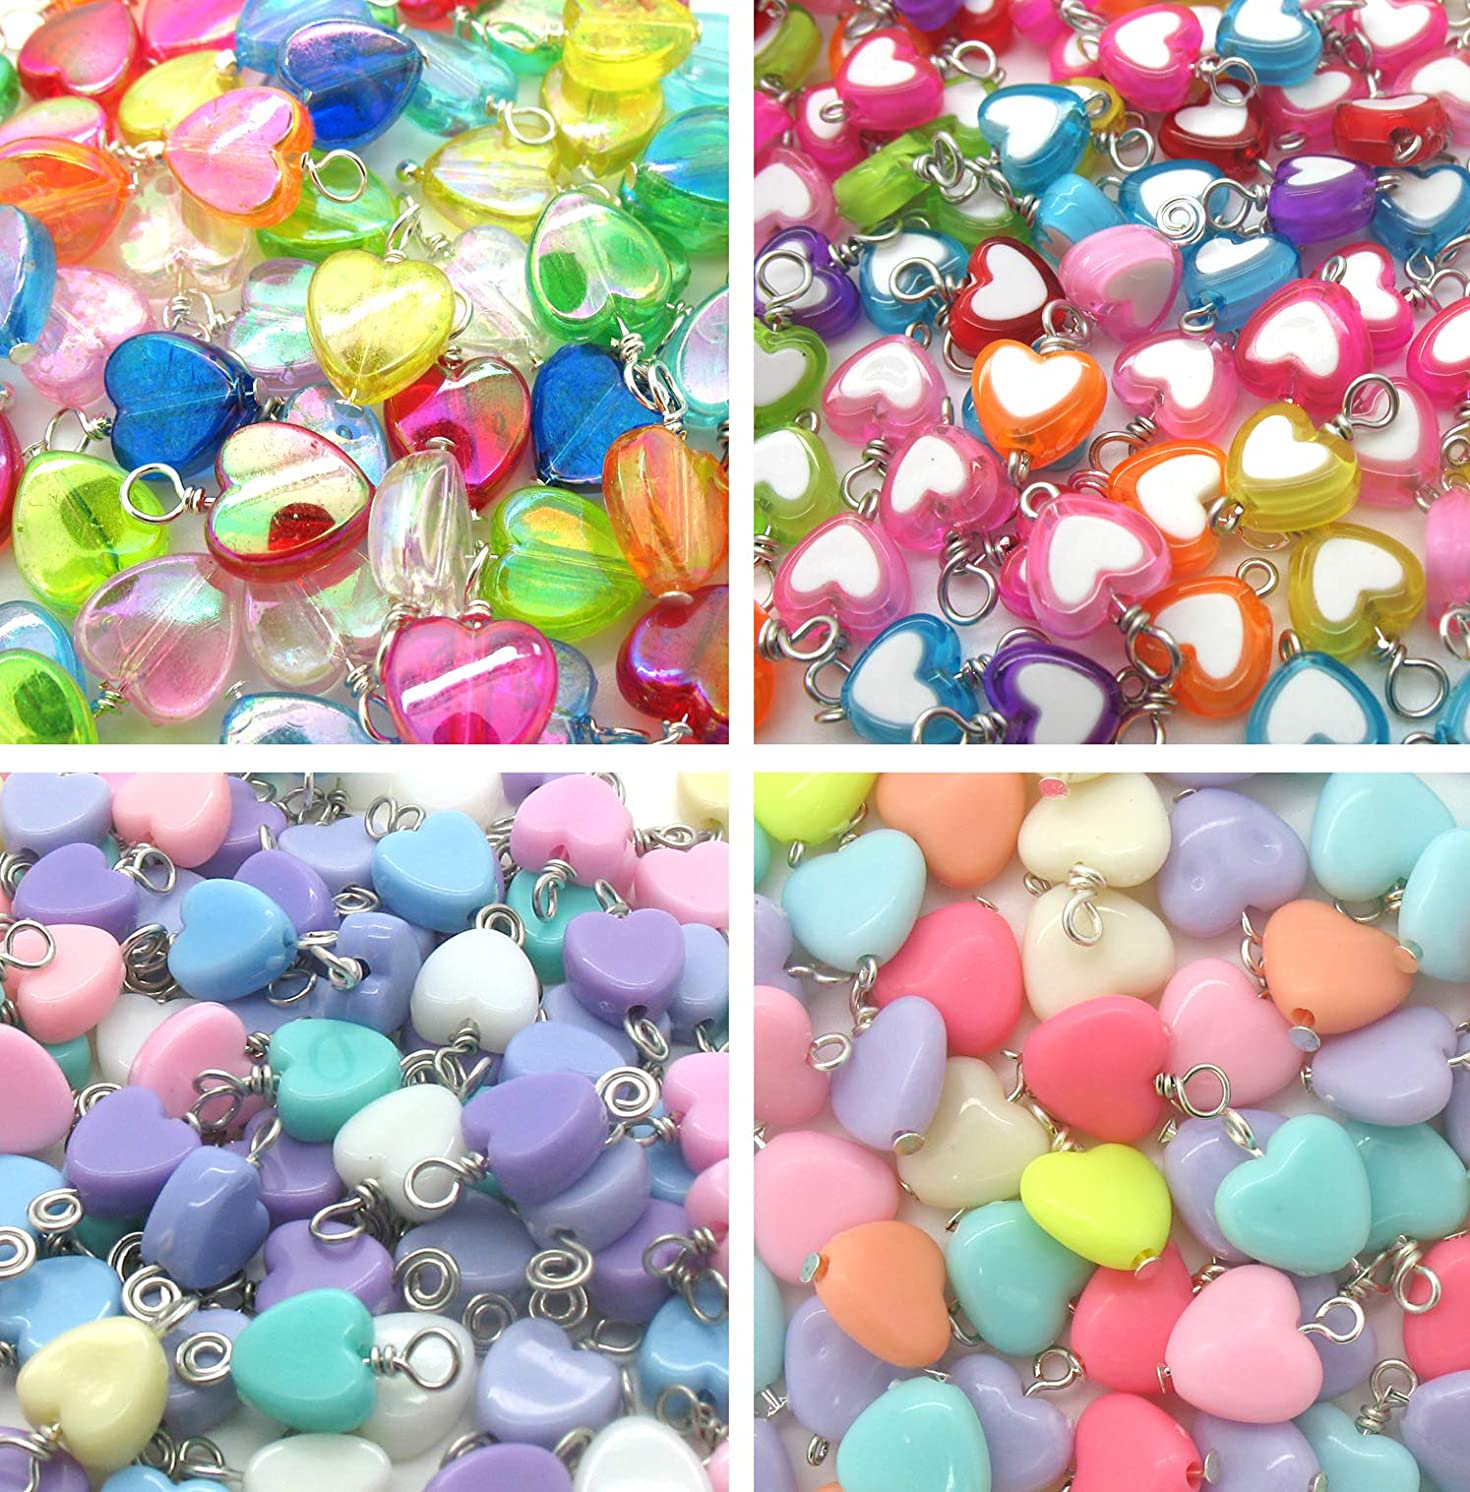 50 Acrylic Heart Charms - Wire-Wrapped Heart Bead Dangles - Assortment of Styles and Colors